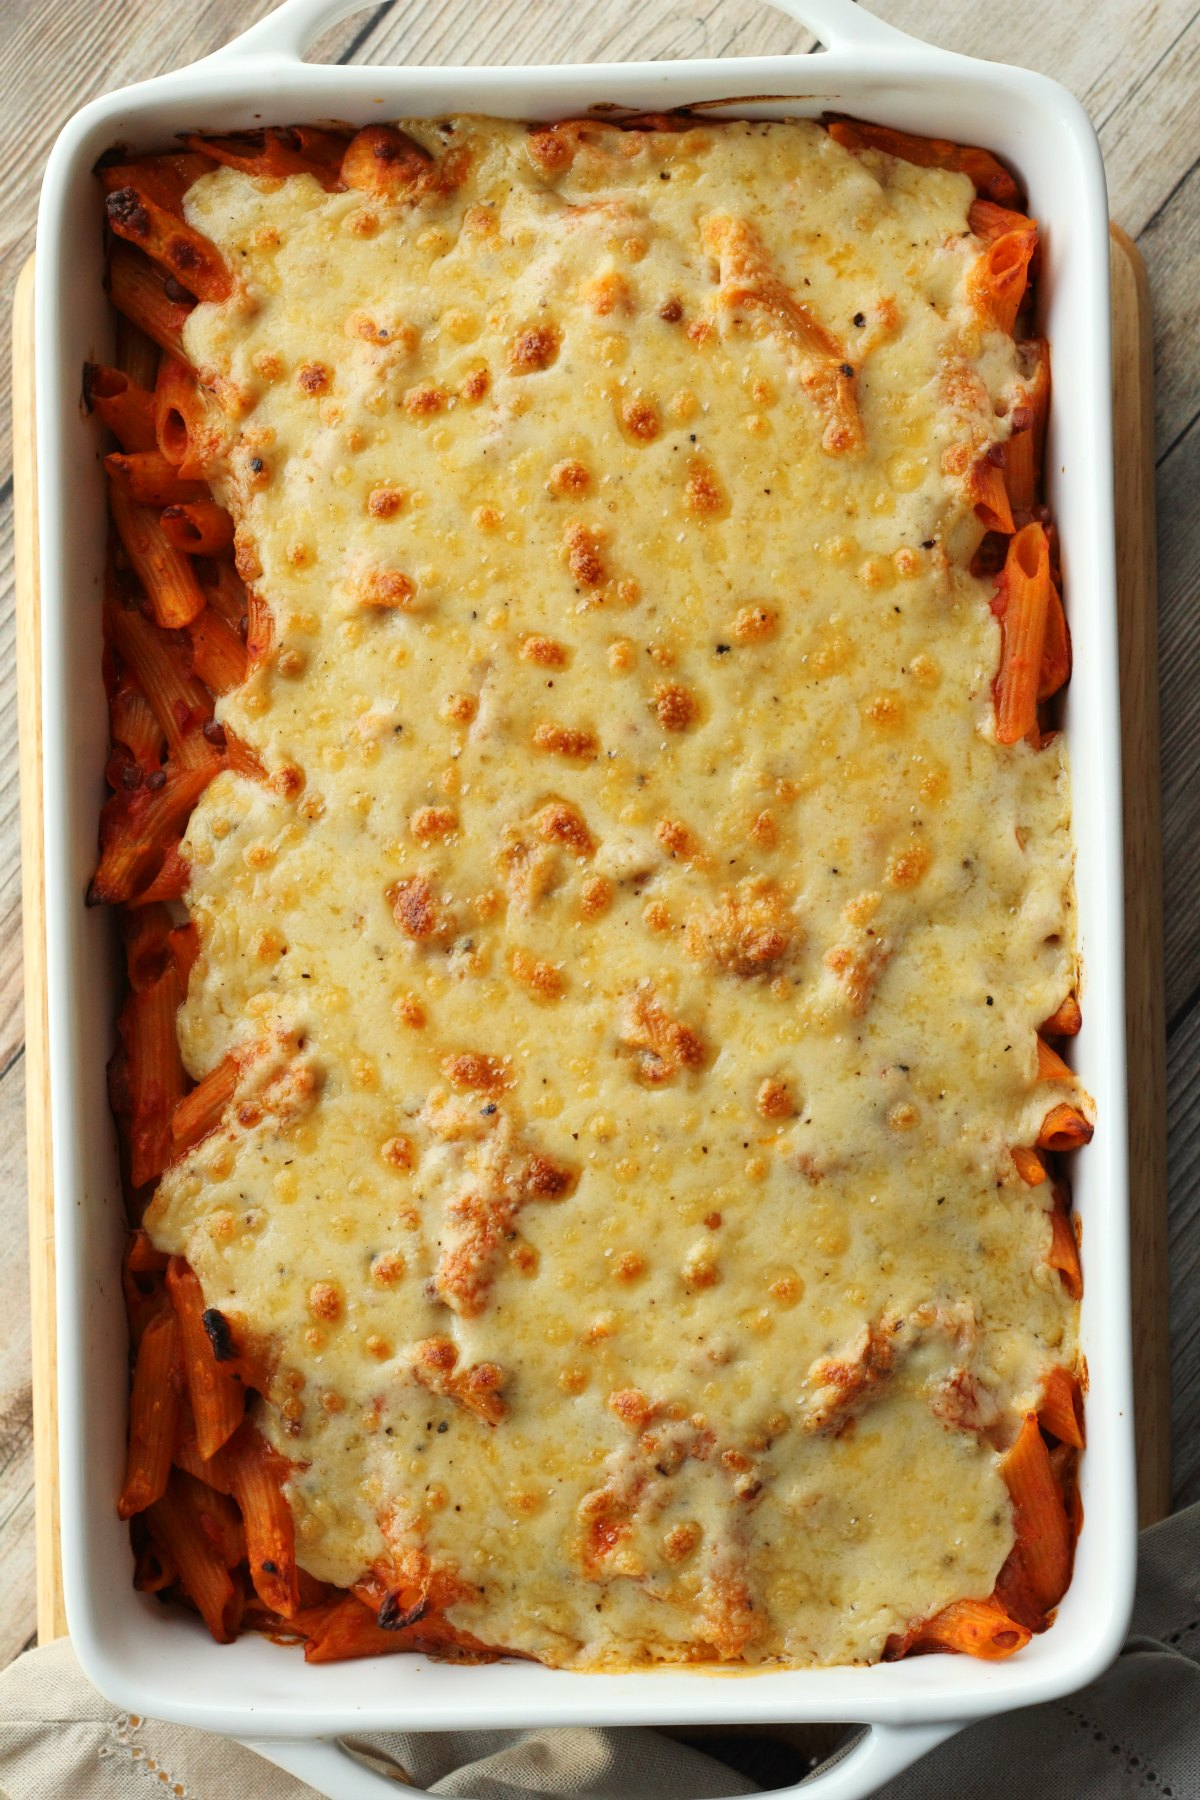 Vegan Pasta Bake straight out of the oven in a white oven dish.